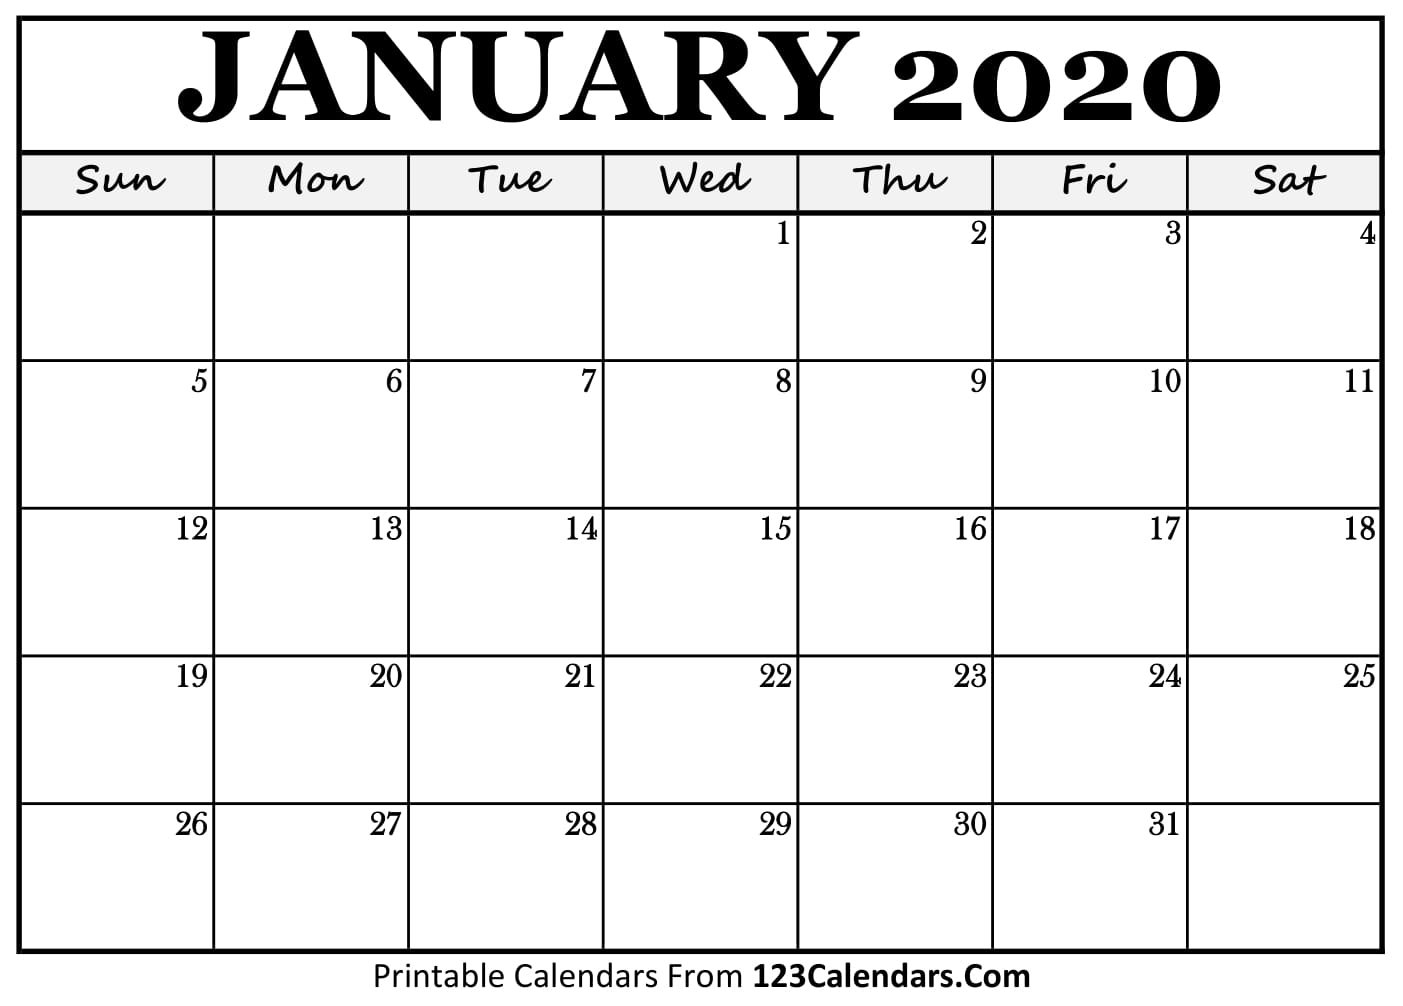 Free Printable Calendar | 123Calendars Blank Calendar I Can Edit And Print